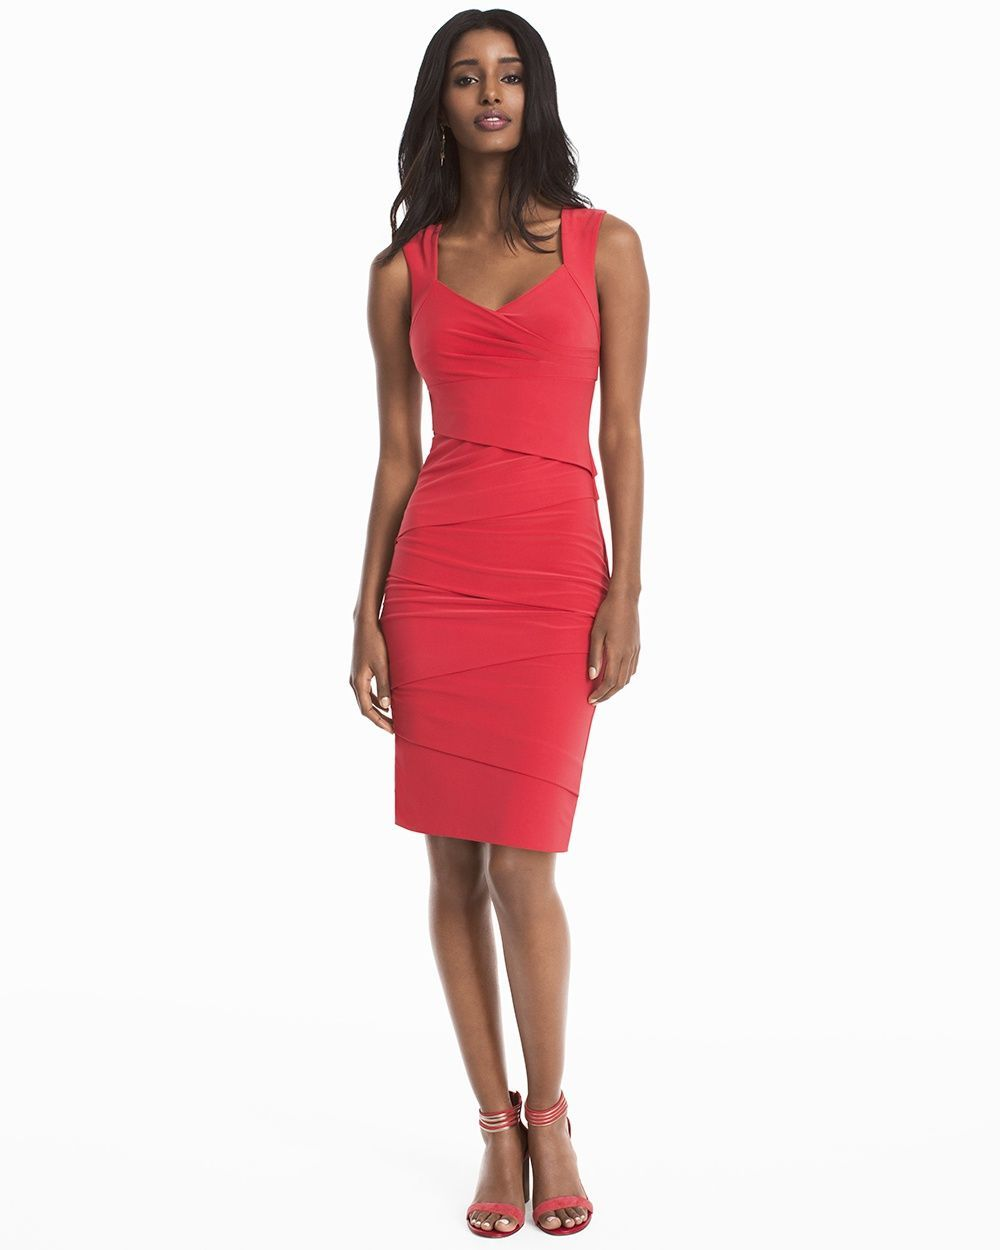 8be388534bef9 Women's Tiered Instantly Slimming Red Dress by WHBM | Products ...